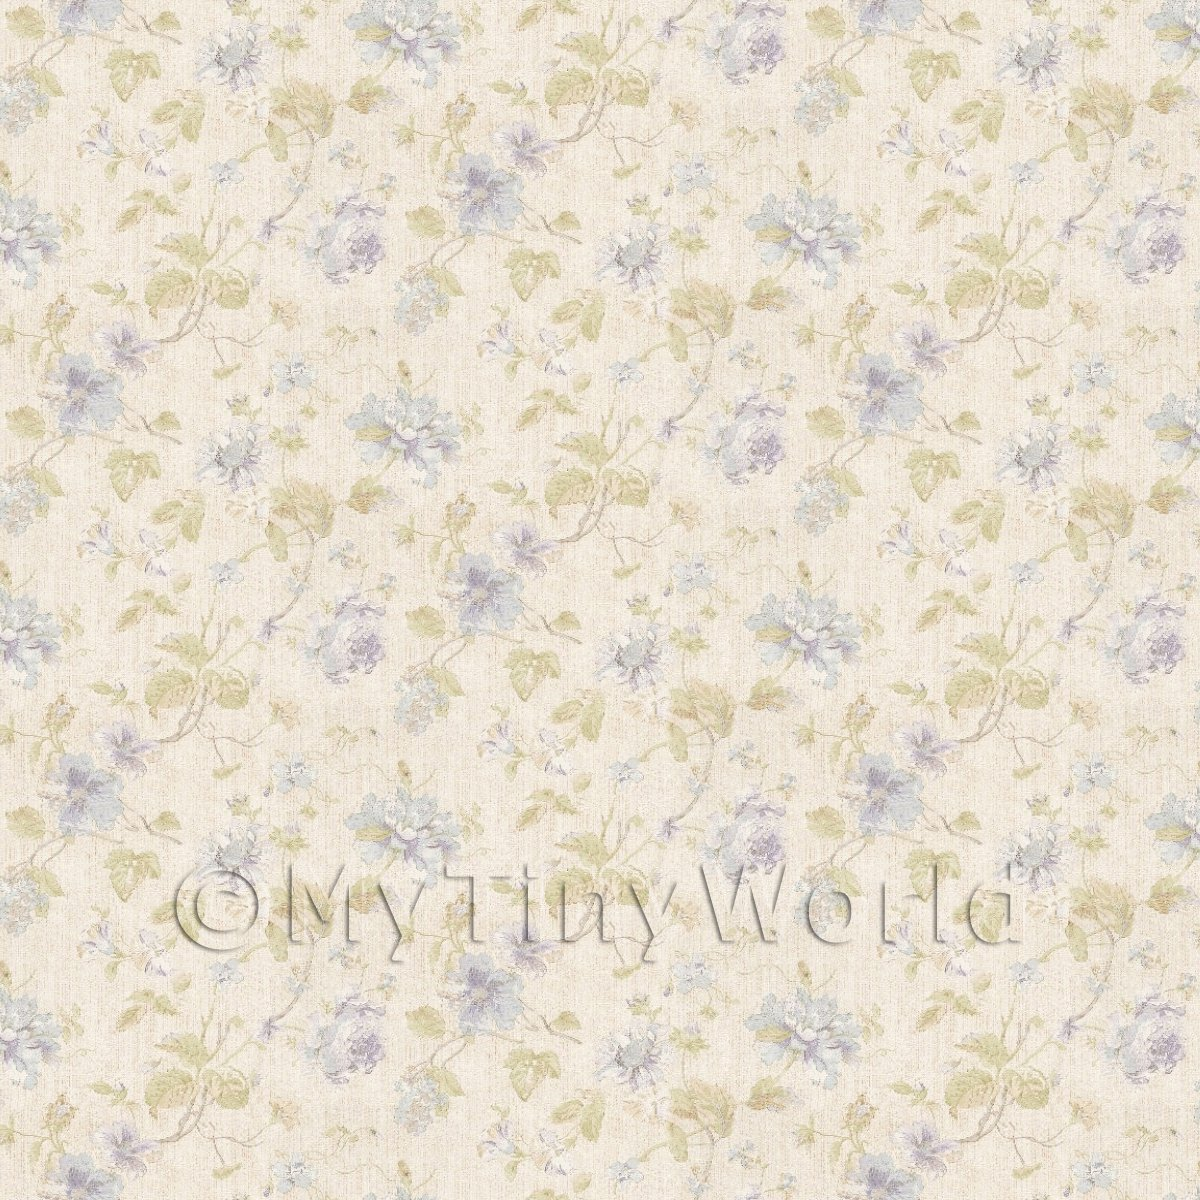 Pack of 5 Dolls House Pale Blue Mixed Flower Design Wallpaper Sheets